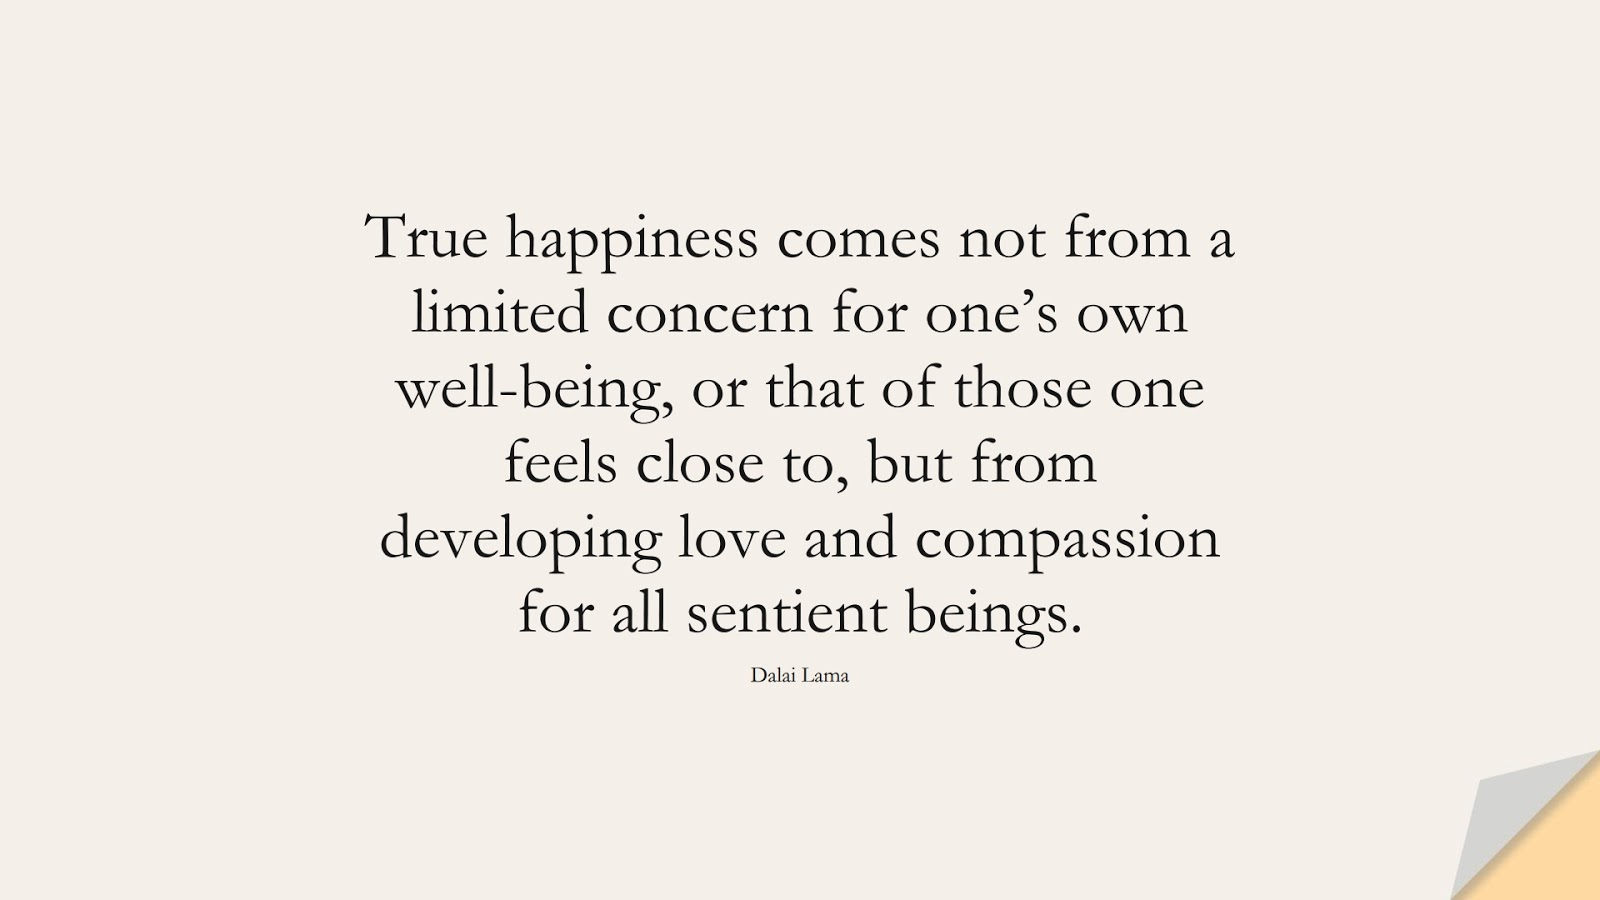 True happiness comes not from a limited concern for one's own well-being, or that of those one feels close to, but from developing love and compassion for all sentient beings. (Dalai Lama);  #HappinessQuotes